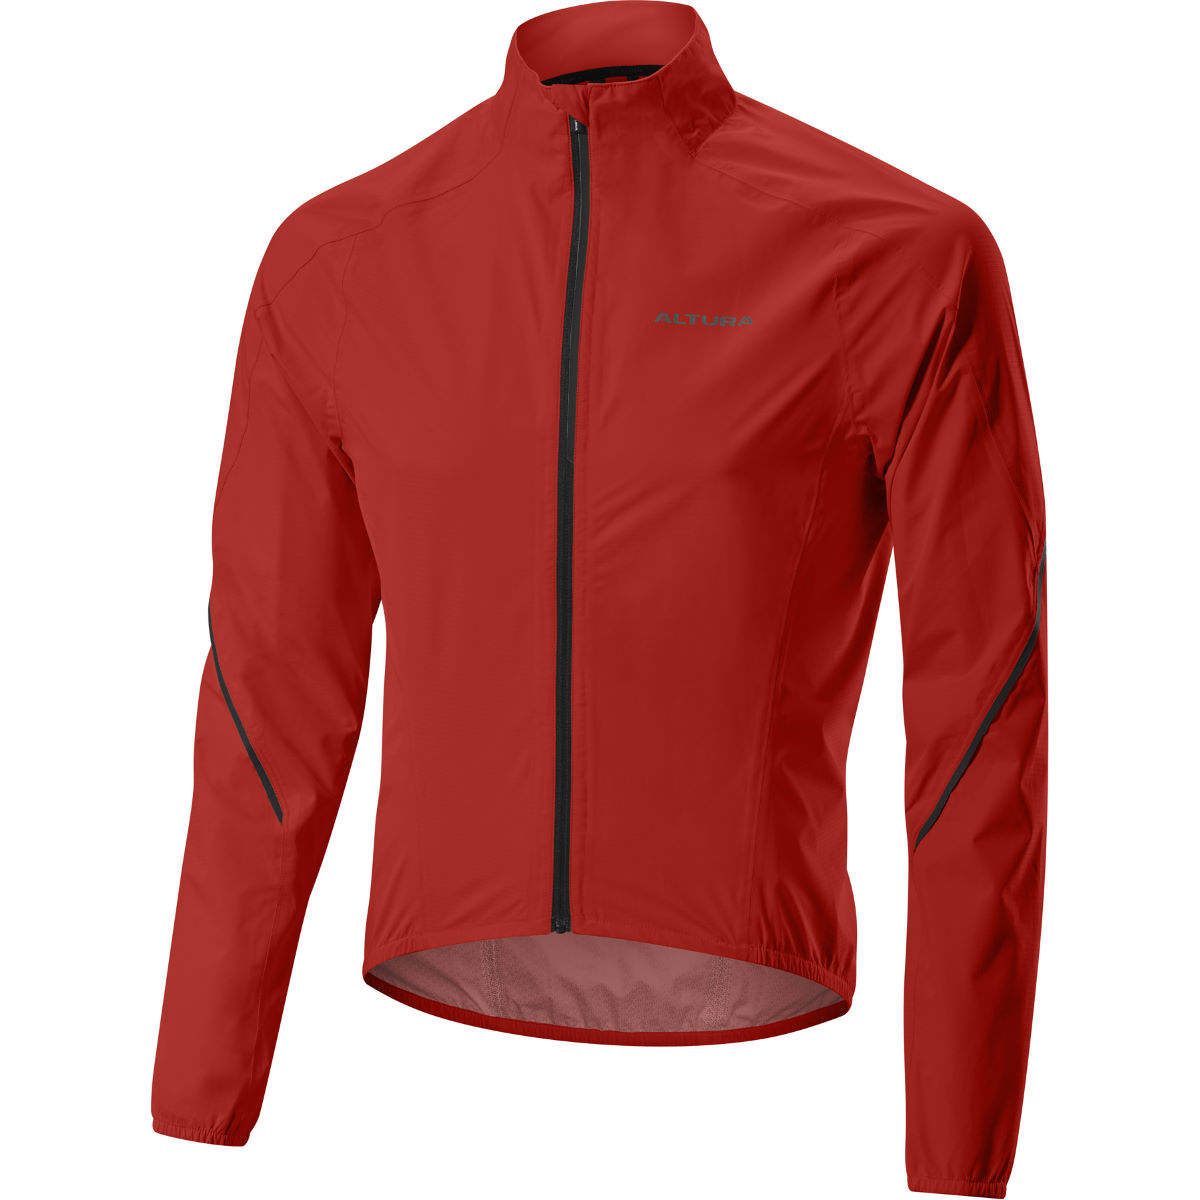 Veste Altura Pocket Rocket 2 (imperméable) - S Team Red  Vestes